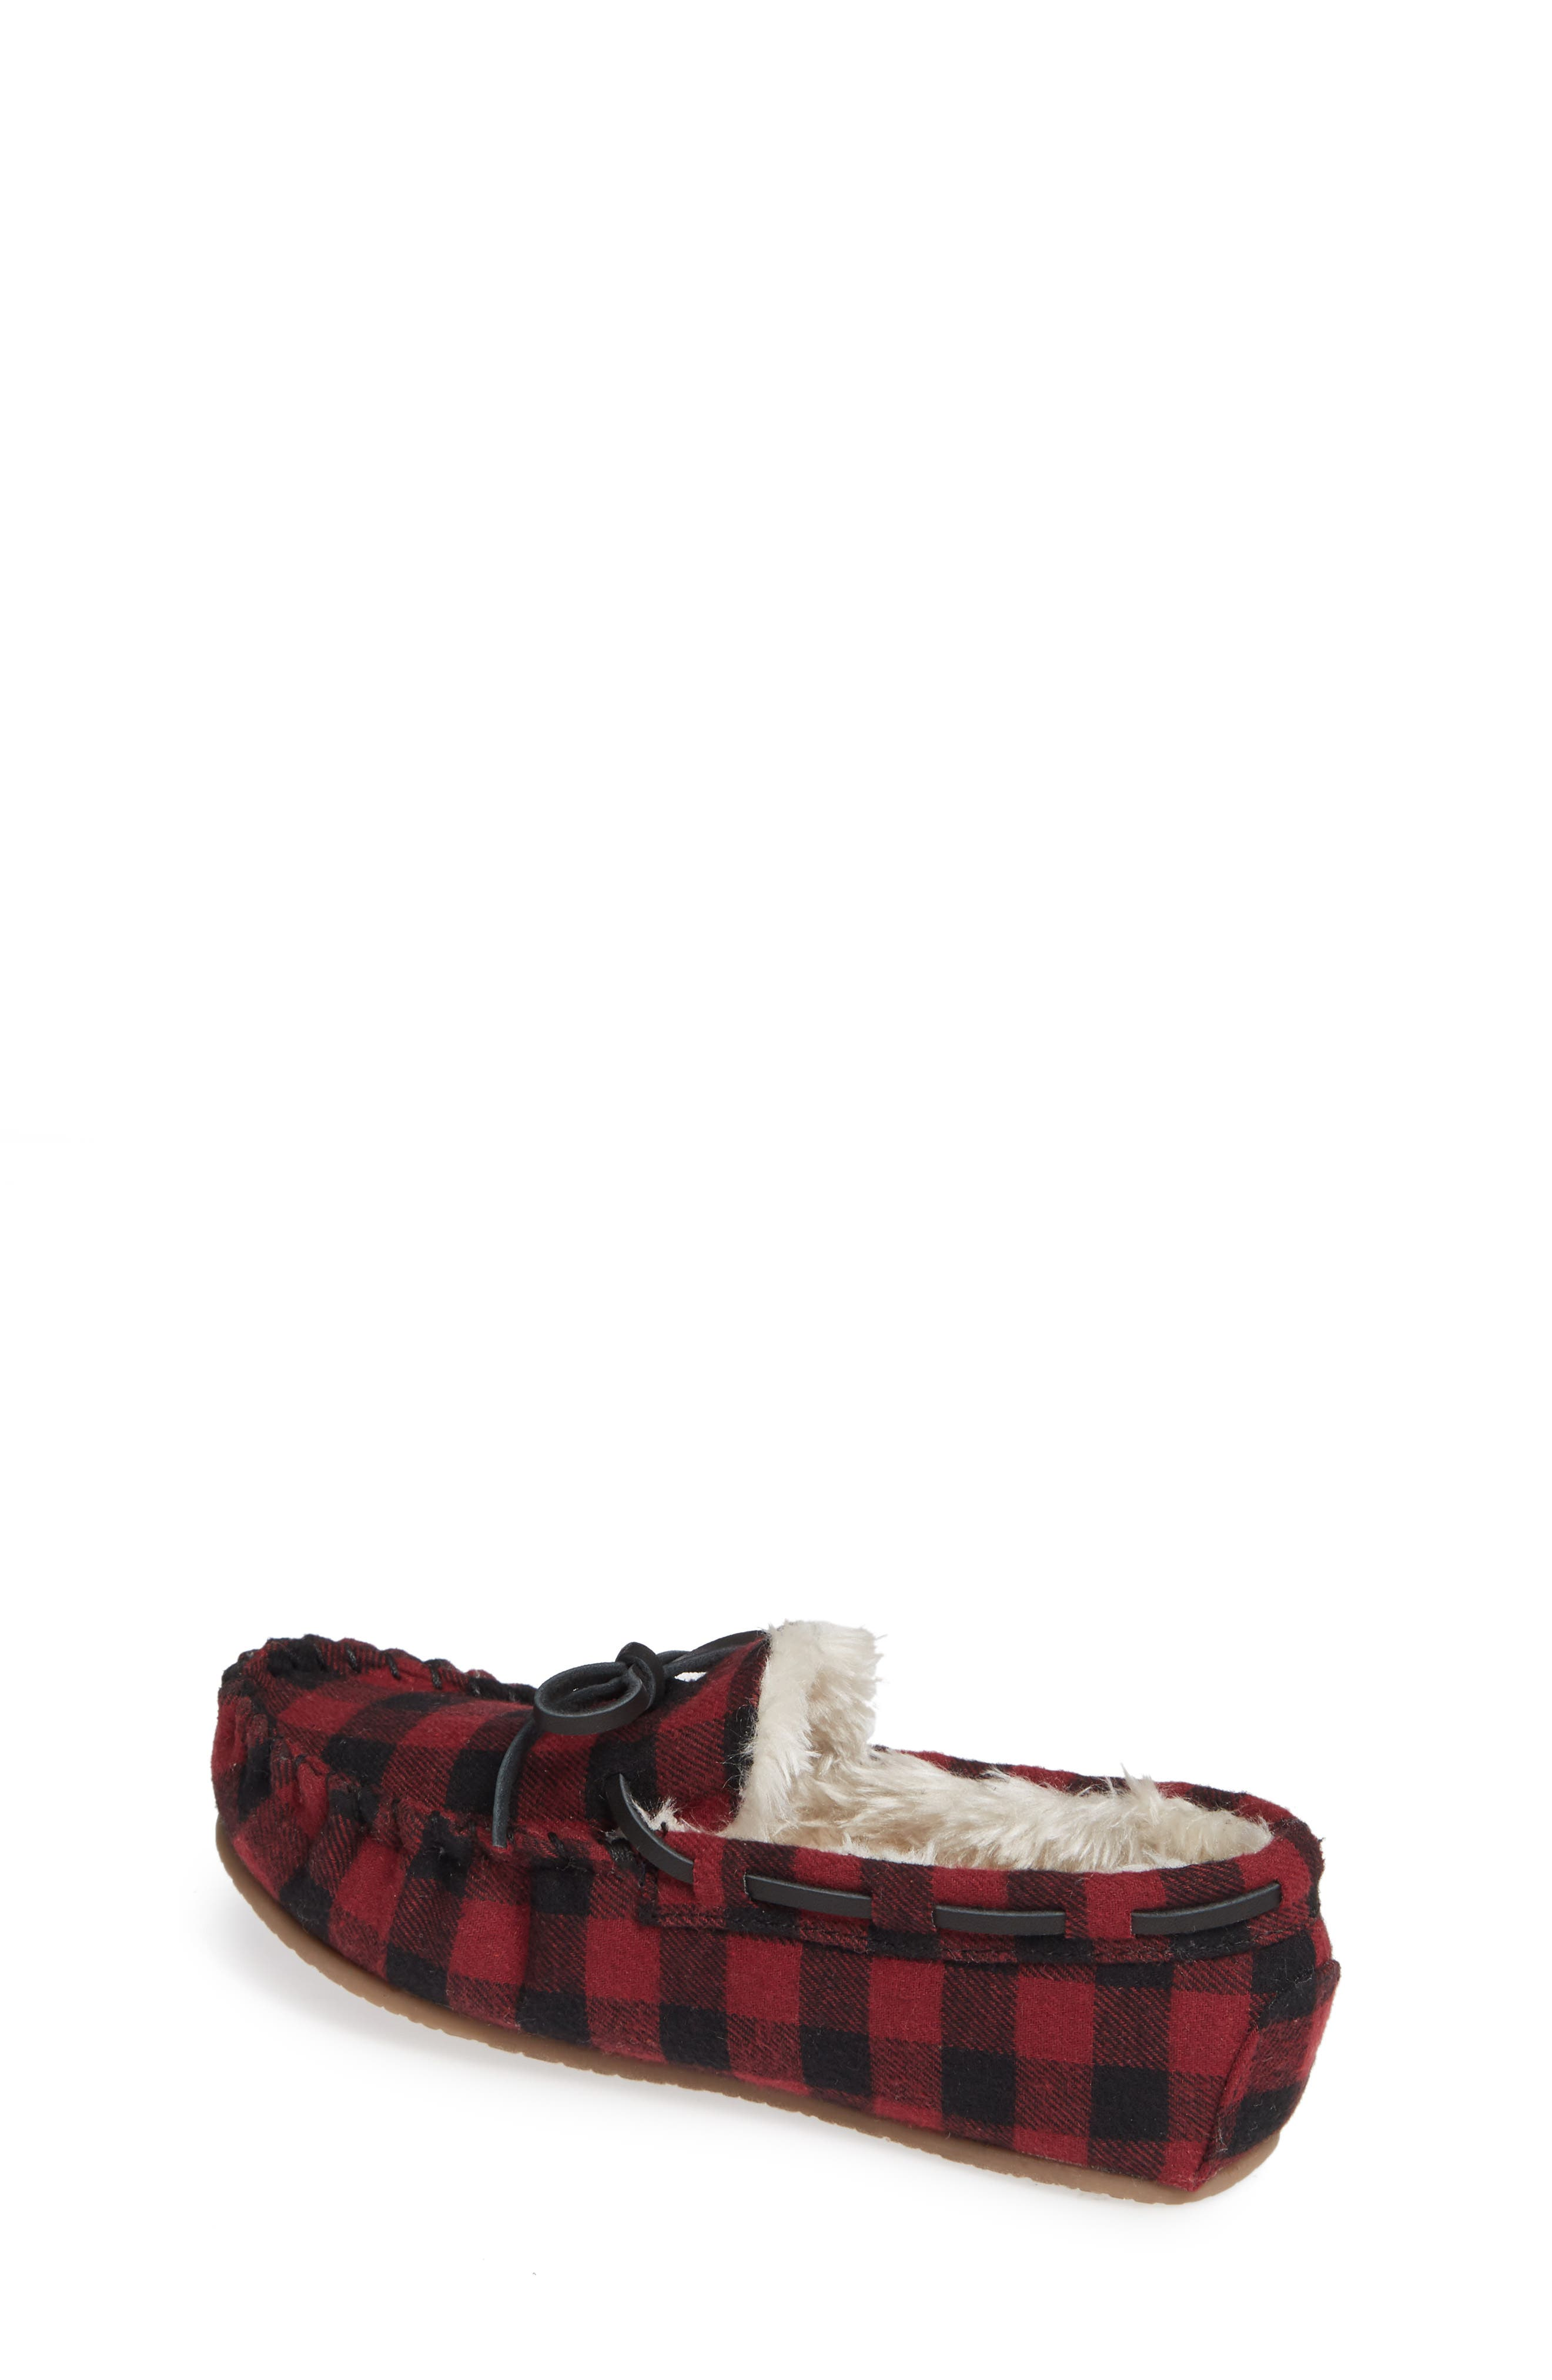 Max Faux Fur Moccasin Slipper,                             Alternate thumbnail 2, color,                             600